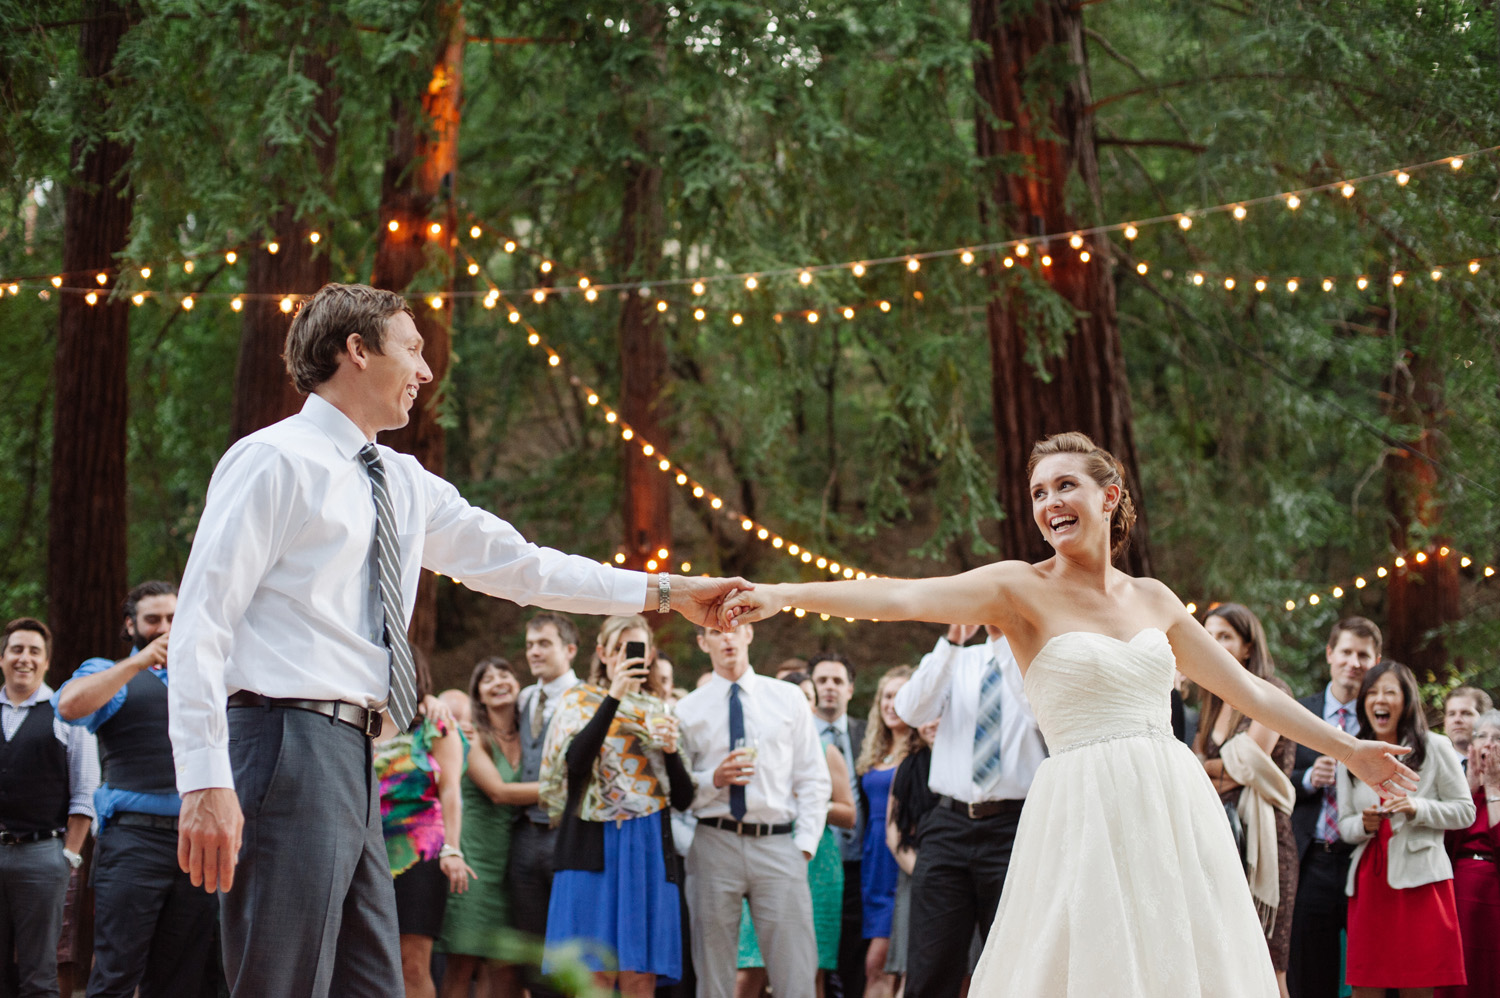 bride and groom first dance in a redwood forest with twinkle lights as guests watch joyfully